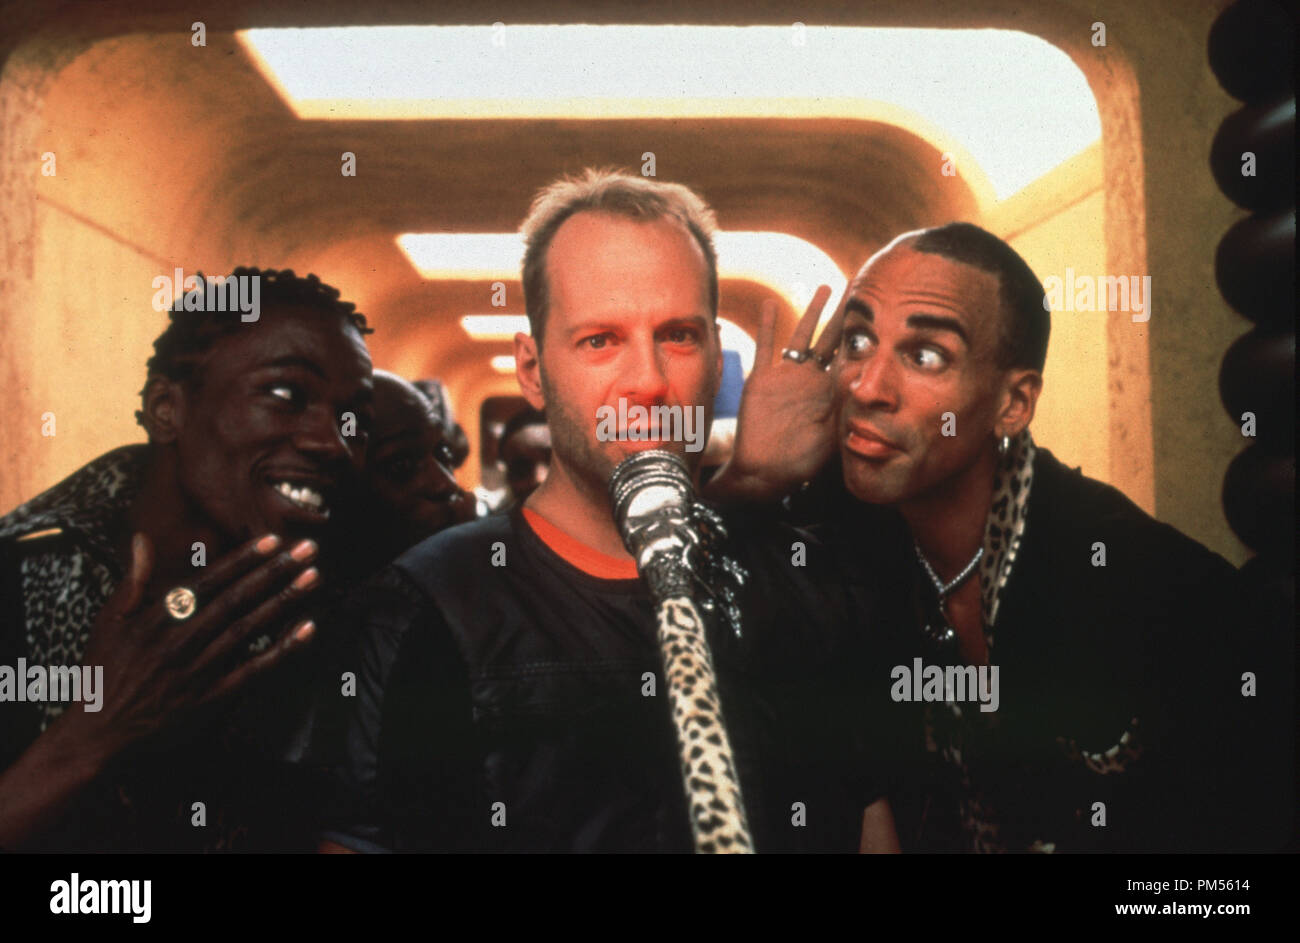 Bruce Willis 'The Fifth Element' 1997 - Stock Image